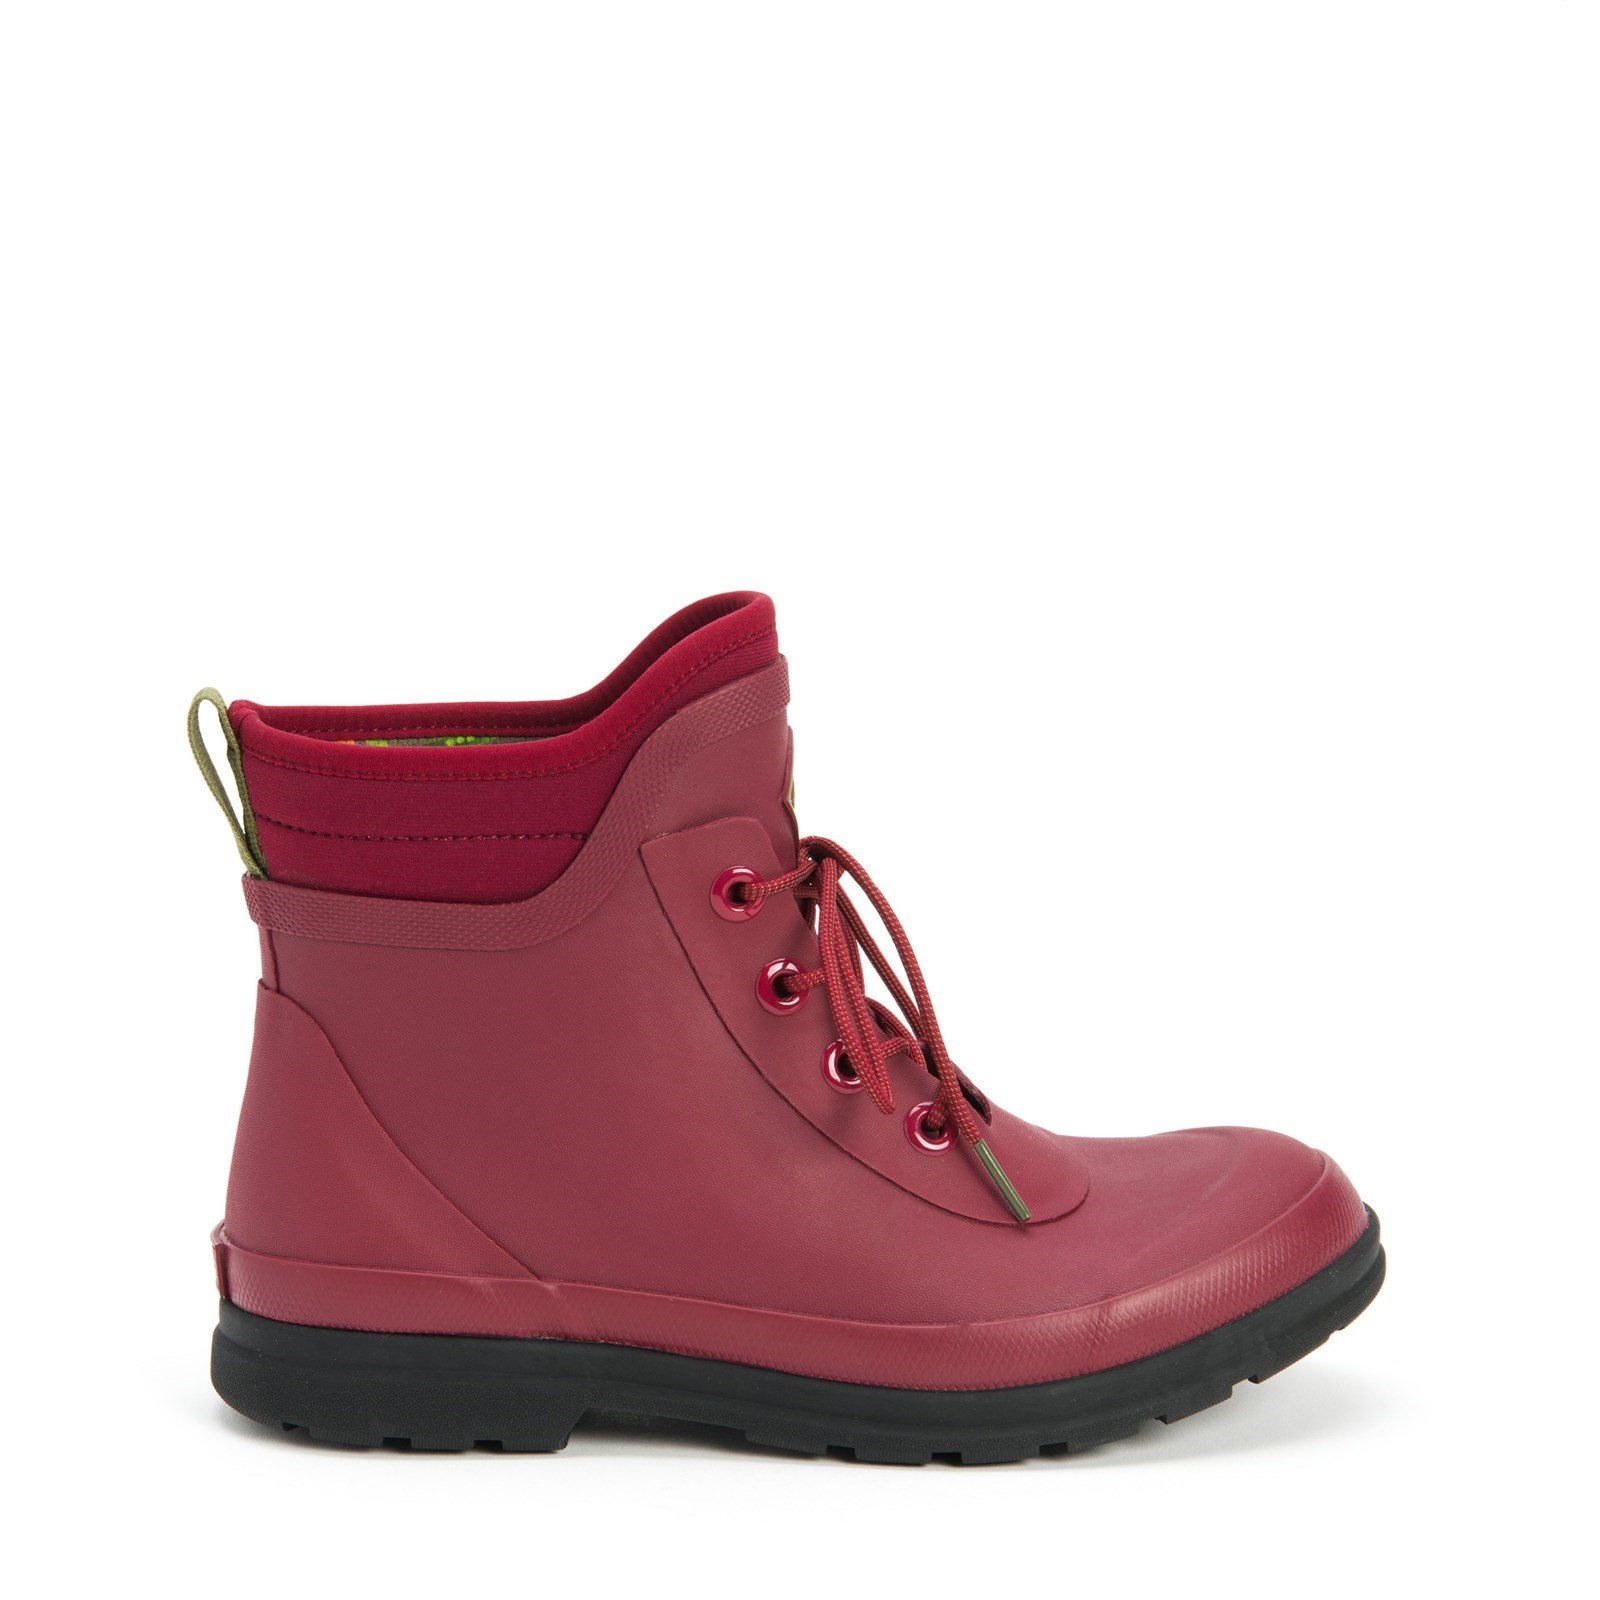 Muck Boots Women's Originals Lace Up Ankle Boot Various Colours 30079 - Berry 9